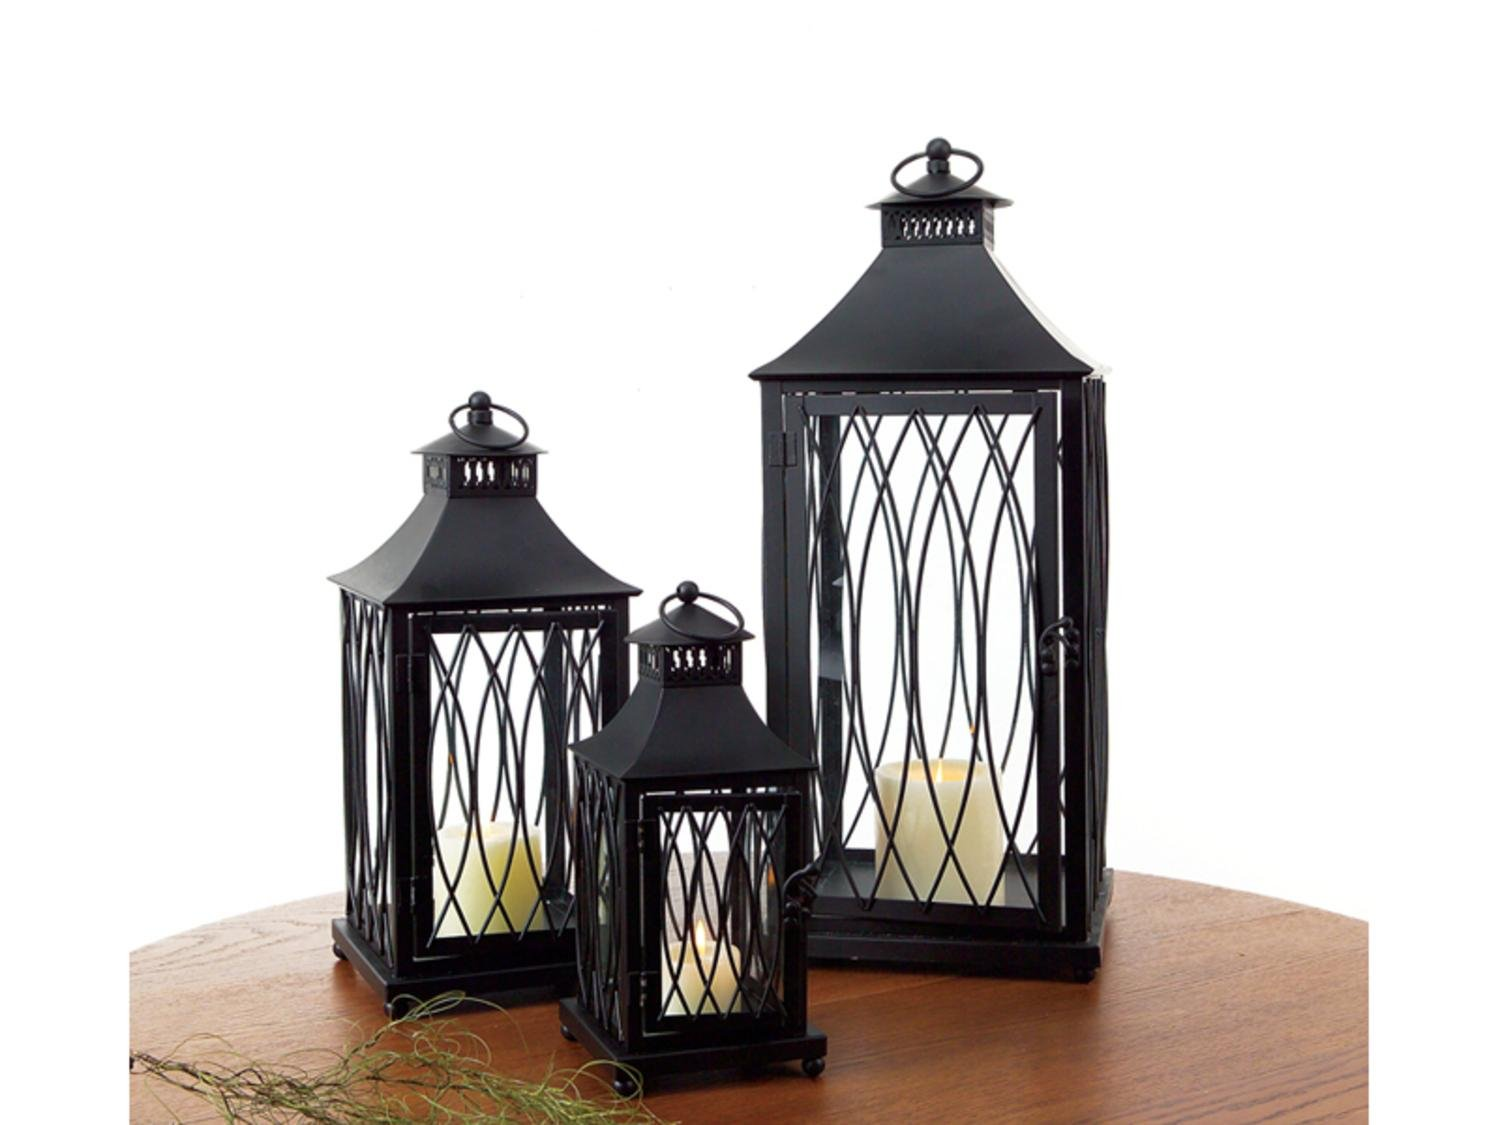 Set of 3 Country Bistro Black Pagoda Style Roof Pillar Candle Lanterns